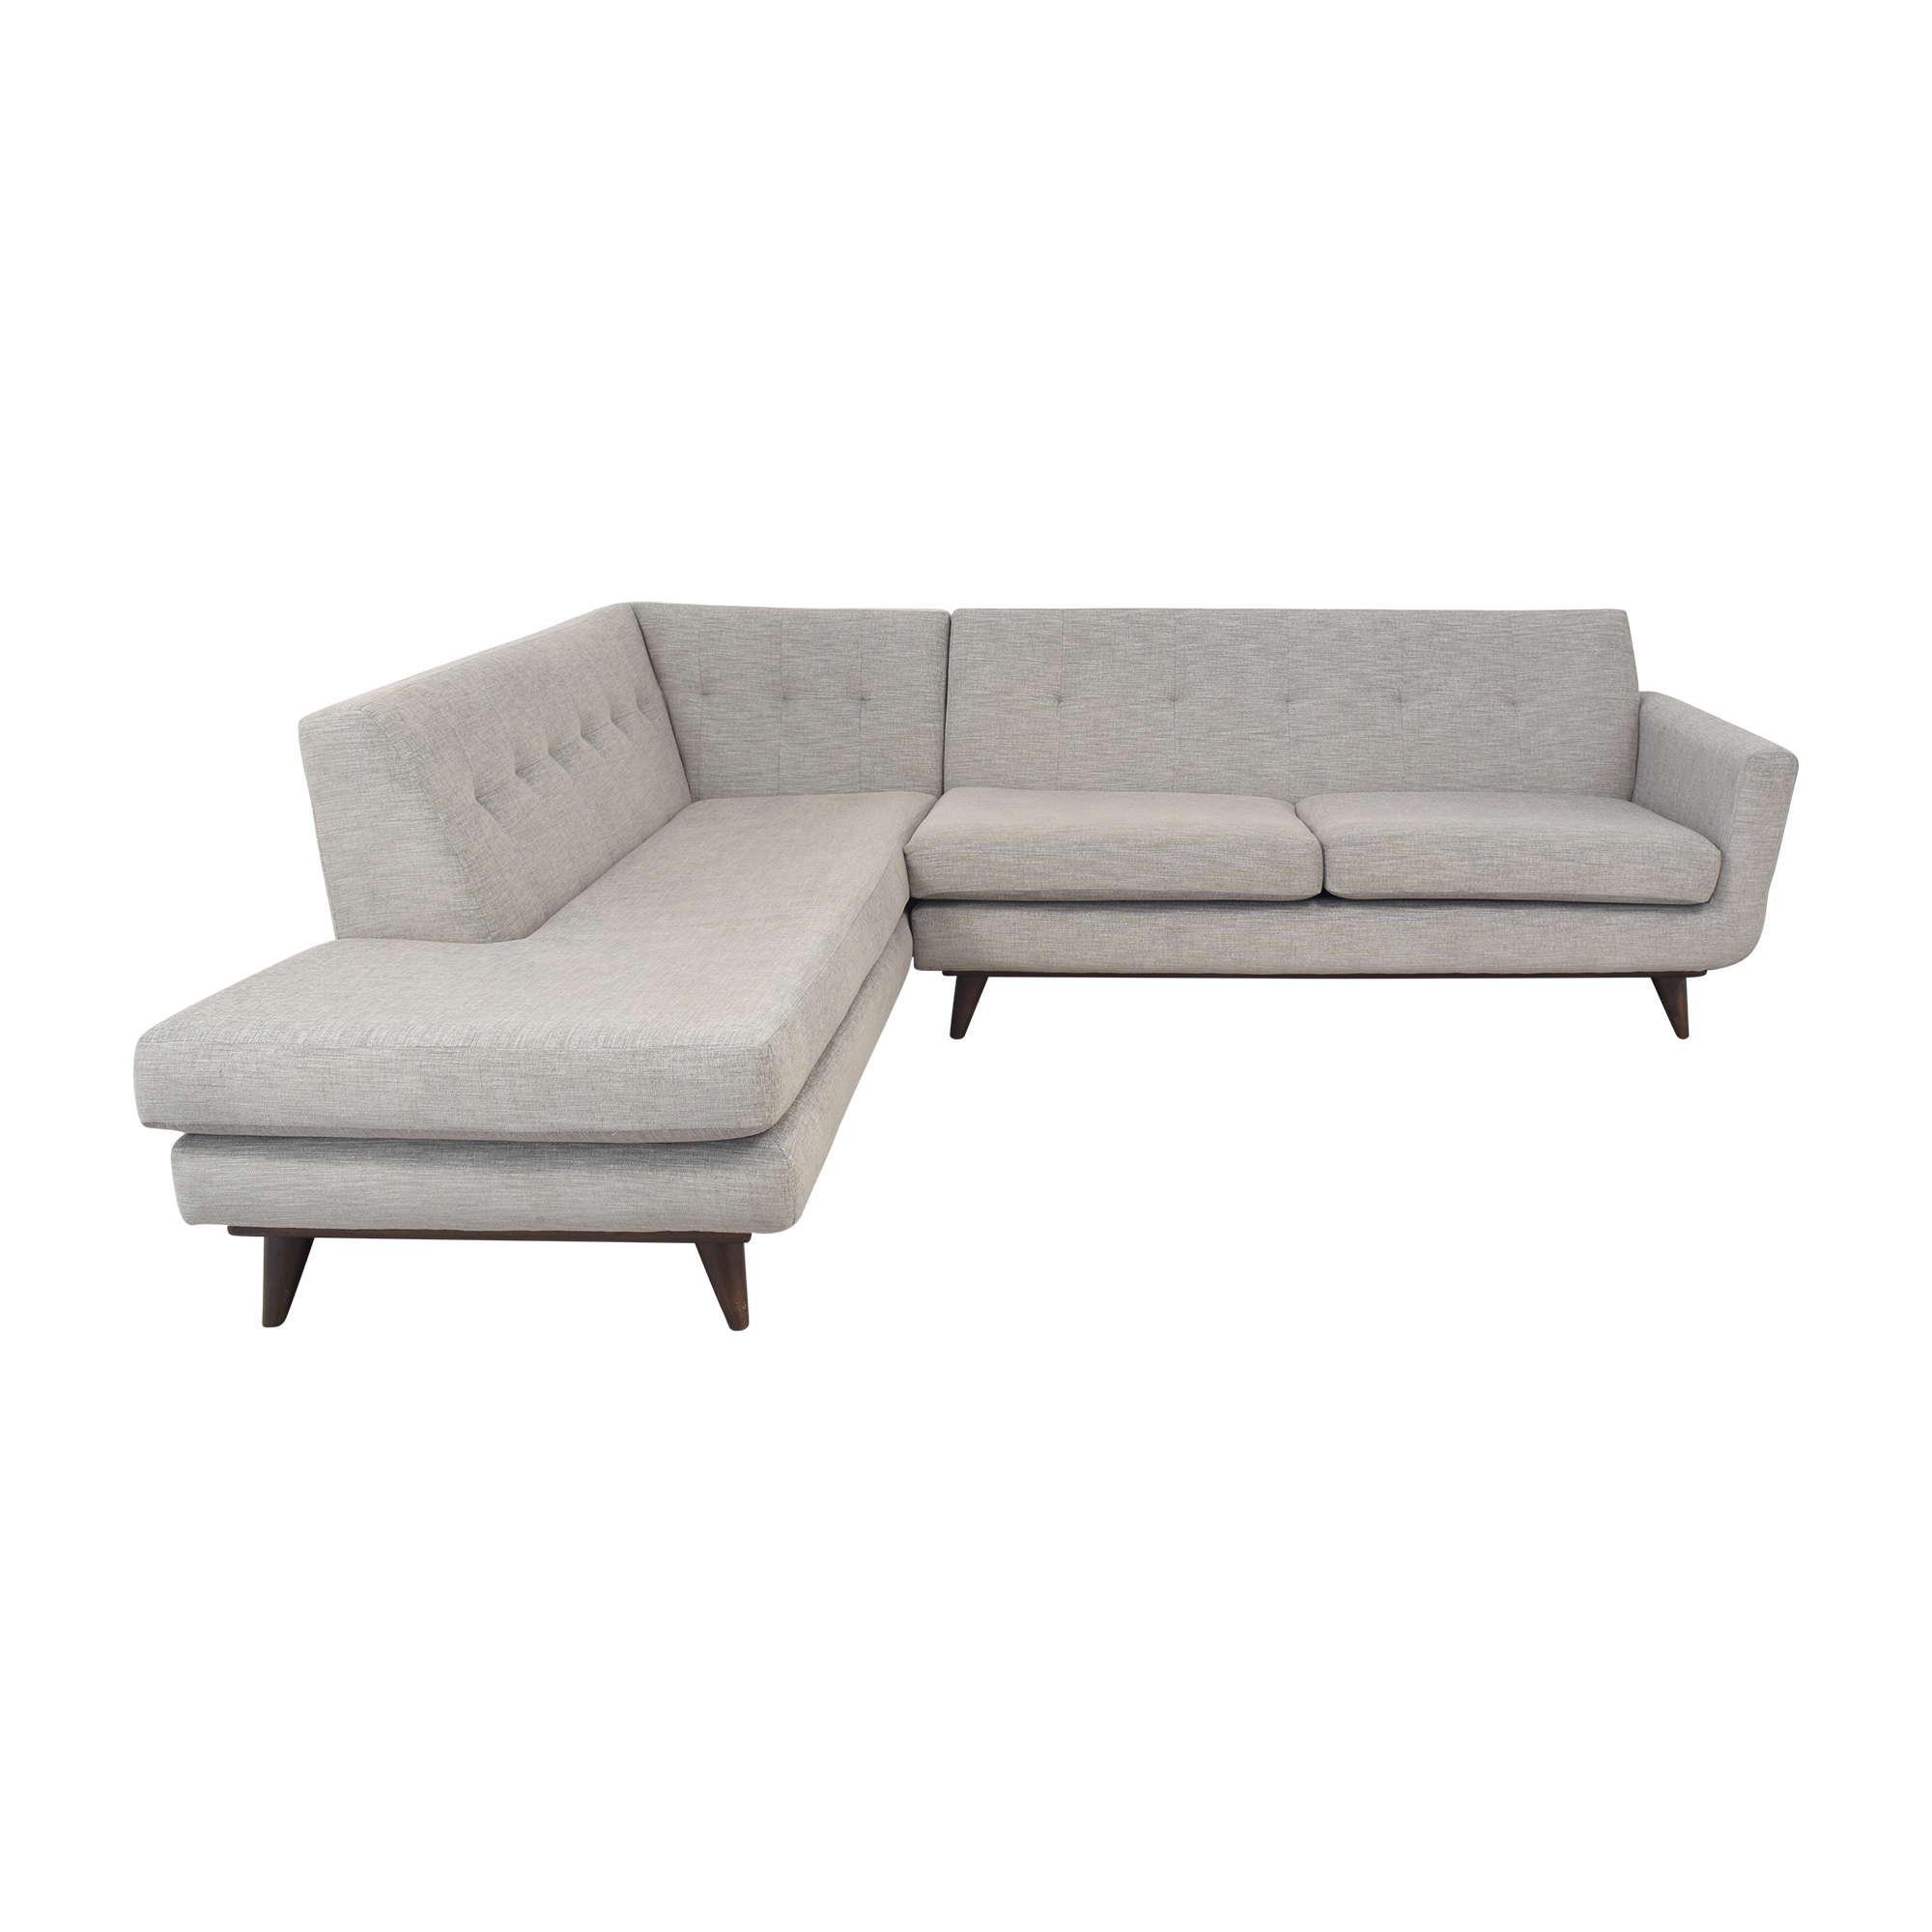 Joybird Joybird Hughes Sectional Sofa with Bumper for sale